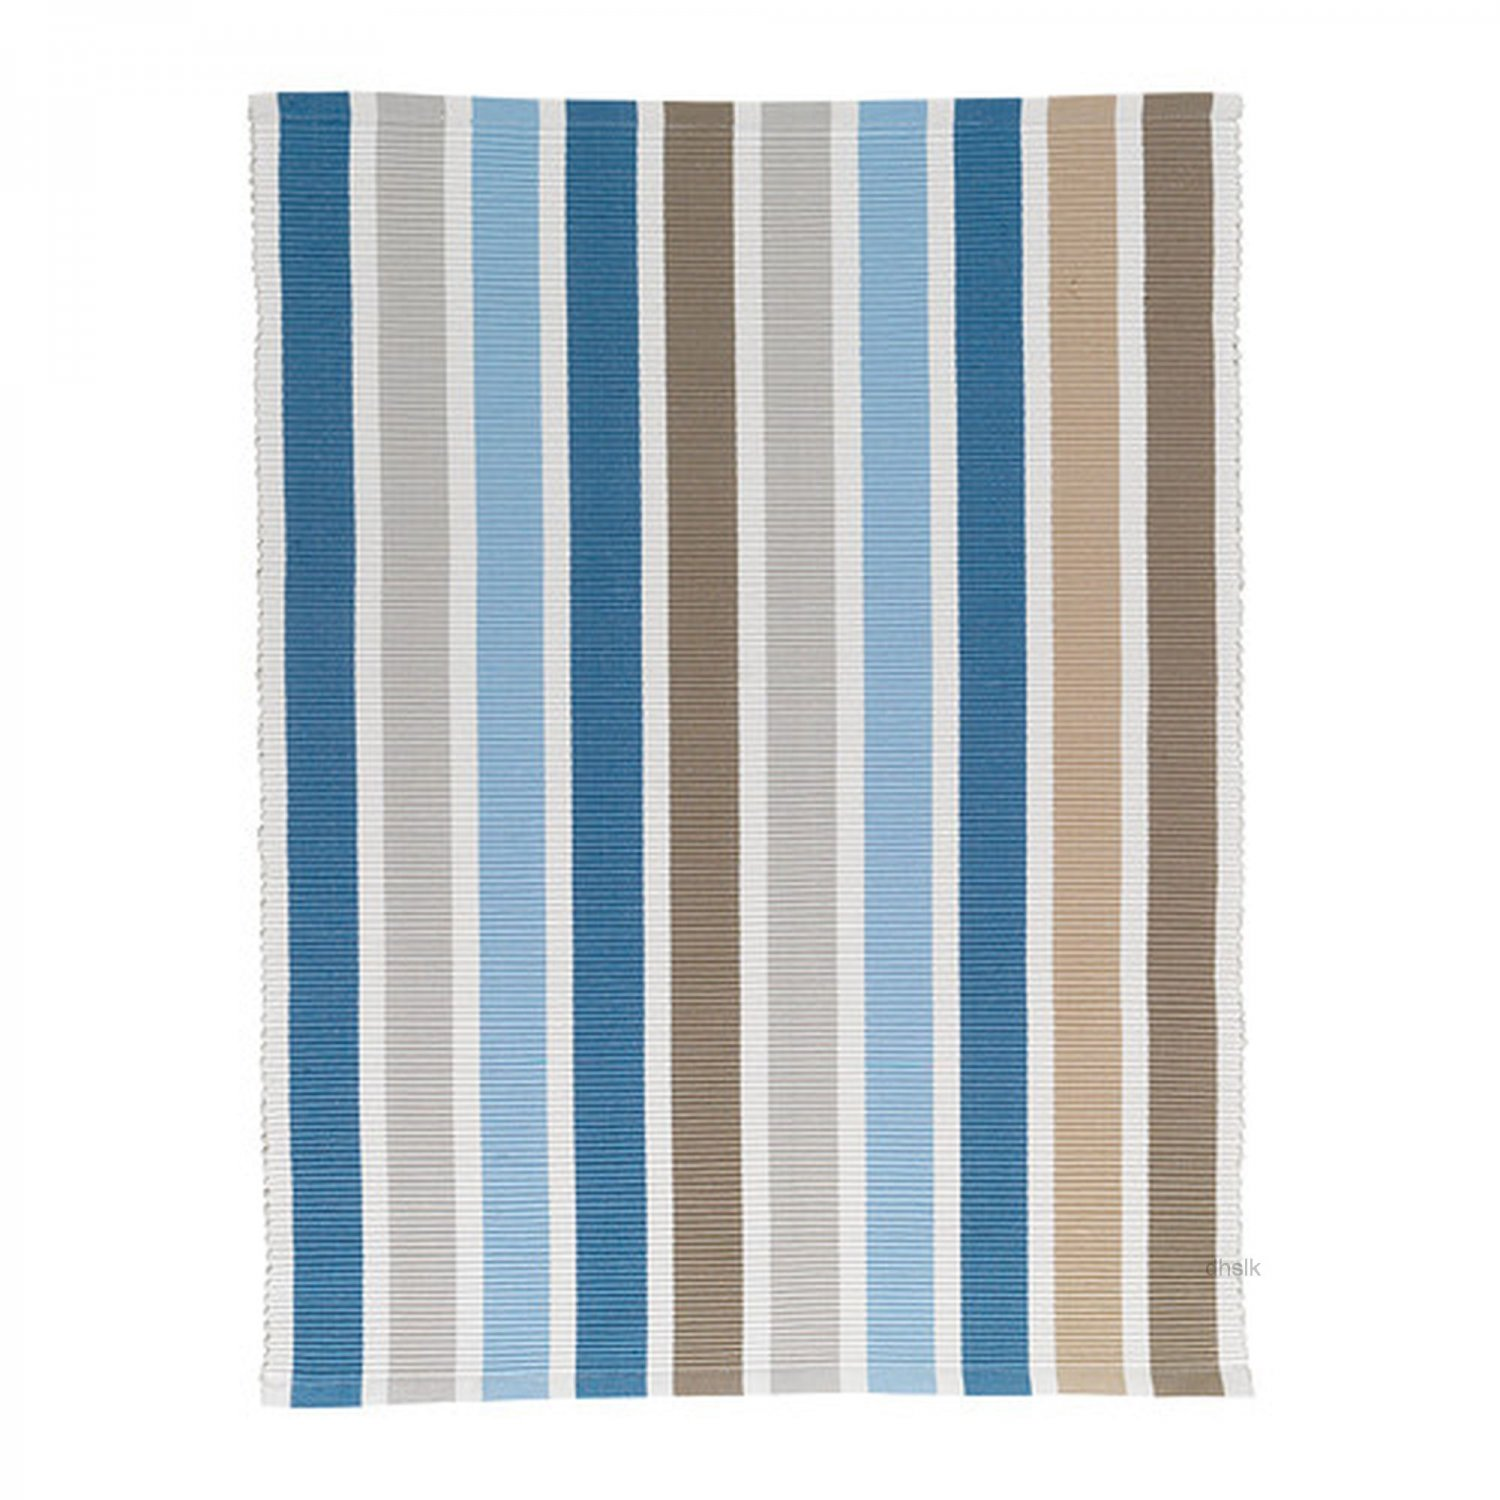 Blue And White Scandinavian Rug: IKEA EMMIE BLUE Beige White STRIPES Area Throw RUG MAT